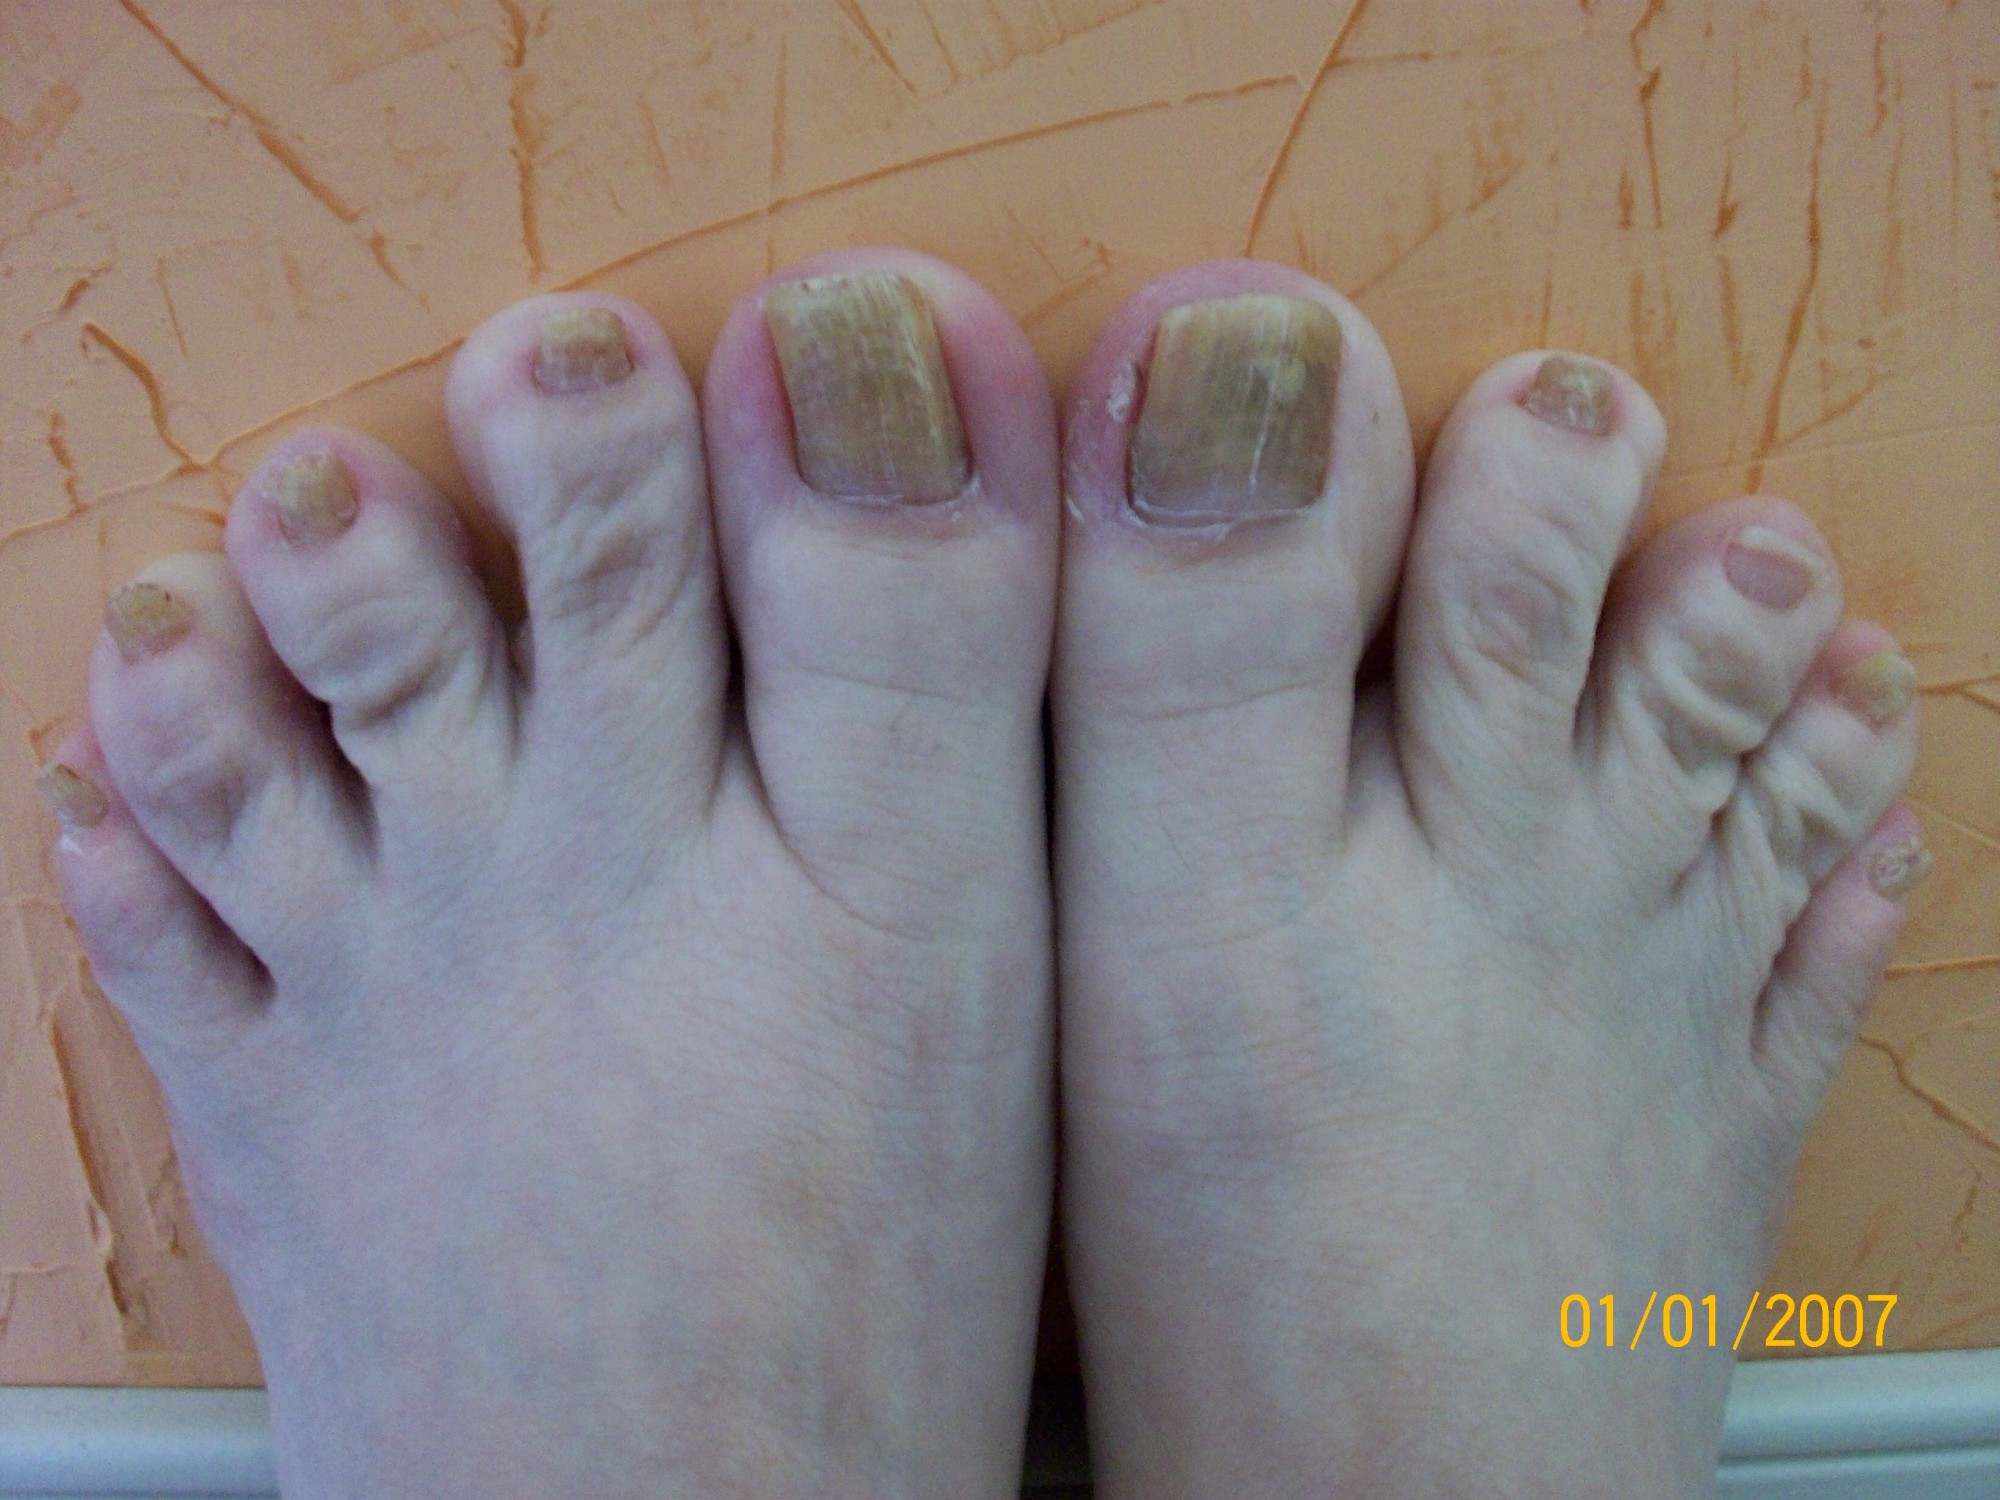 Yellow Nails Caused By Toenail Fungus